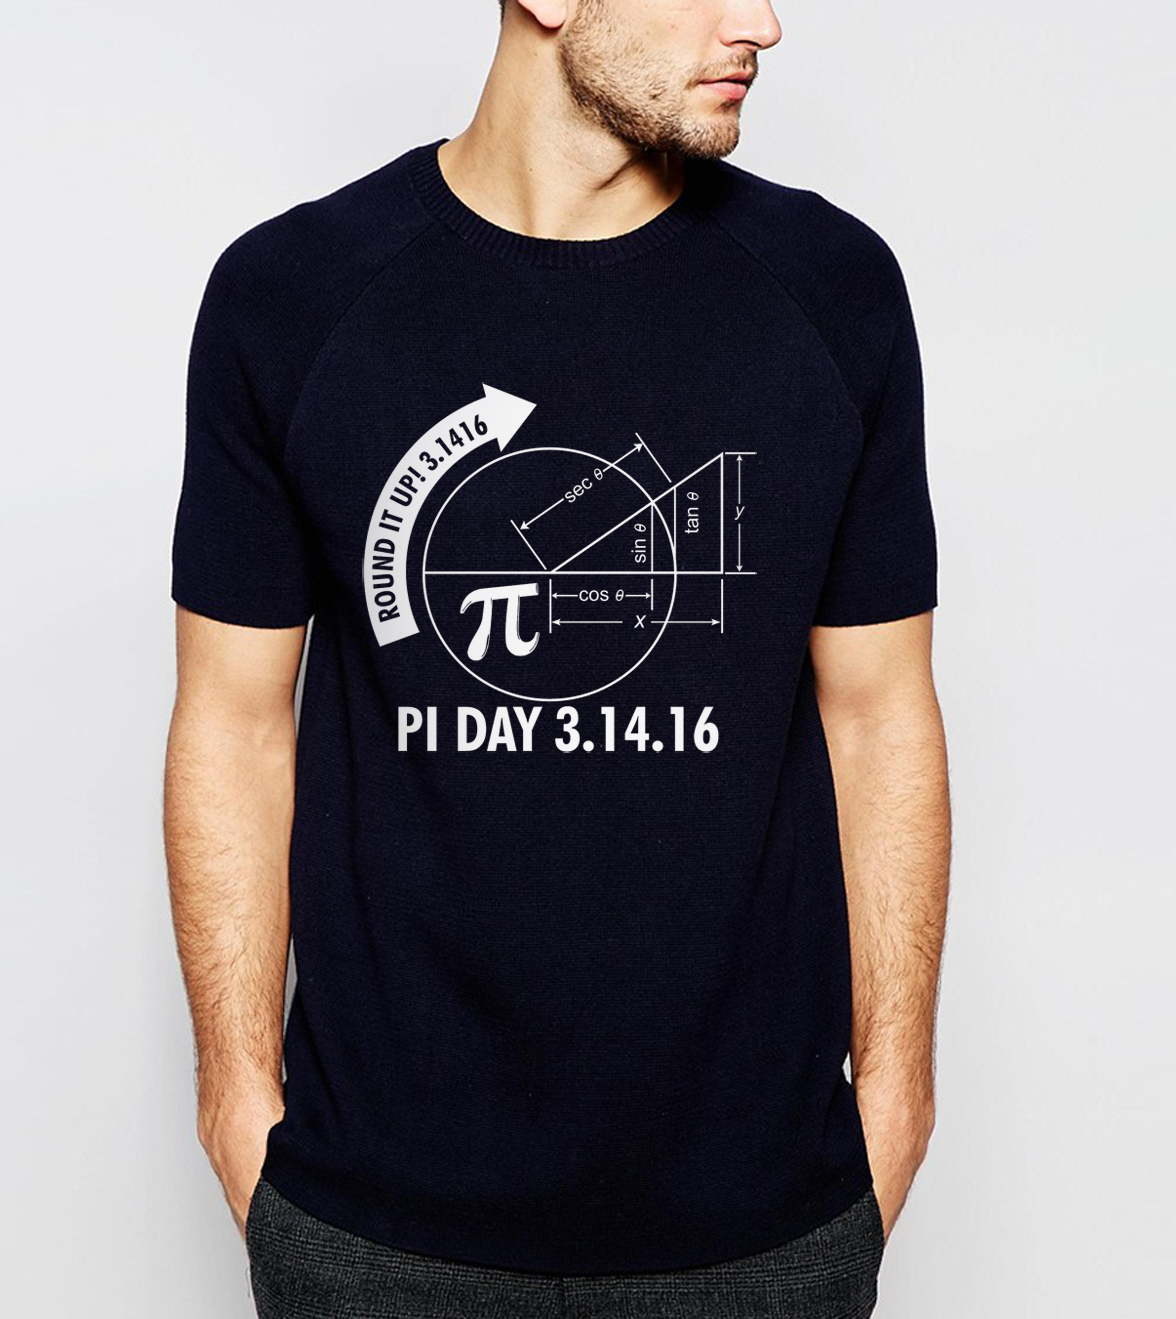 science men t shirt Math Graph And Pi 2018 summer new loose fit t-shirt Short Sleeve O-Neck 100% cotton high quality tops tee ...